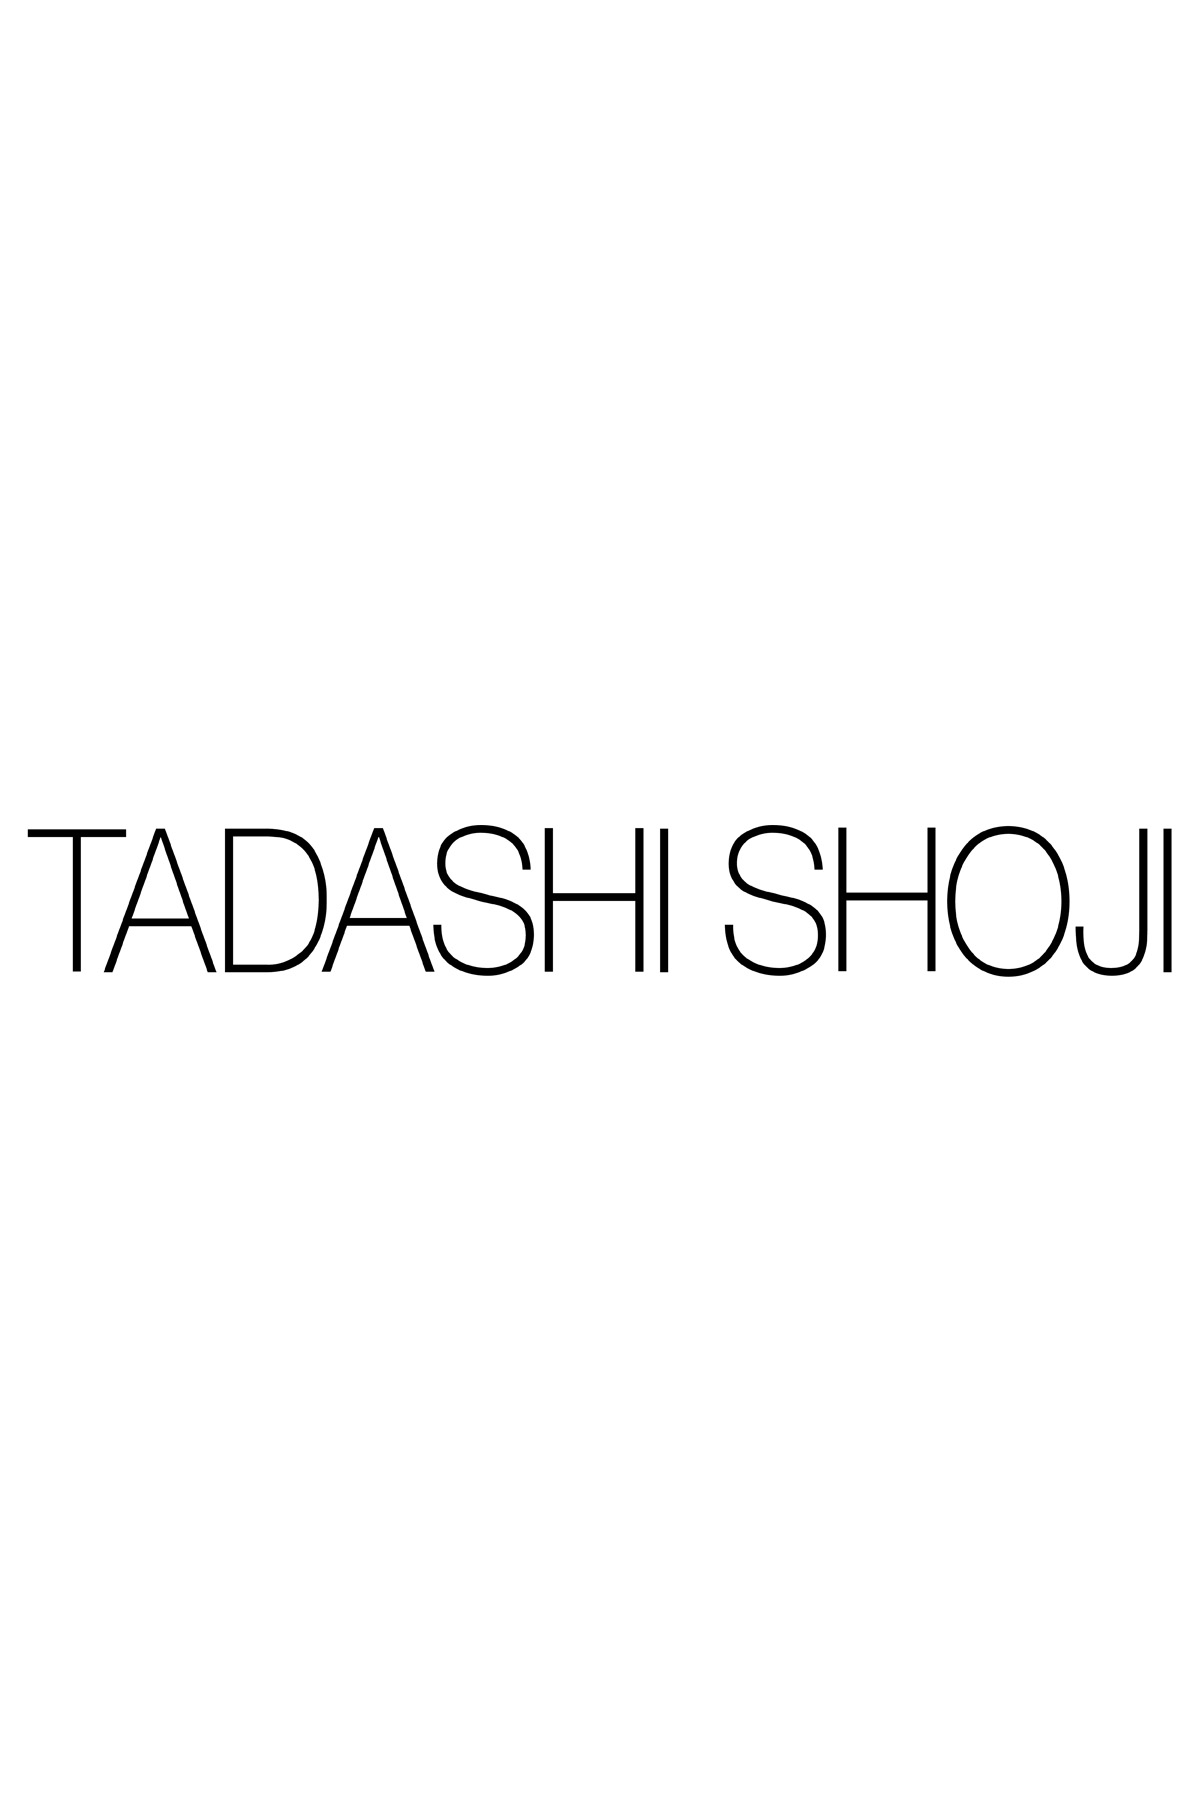 Embroidered Lace V-Neck A-Line Dress - PLUS SIZE | Tadashi Shoji